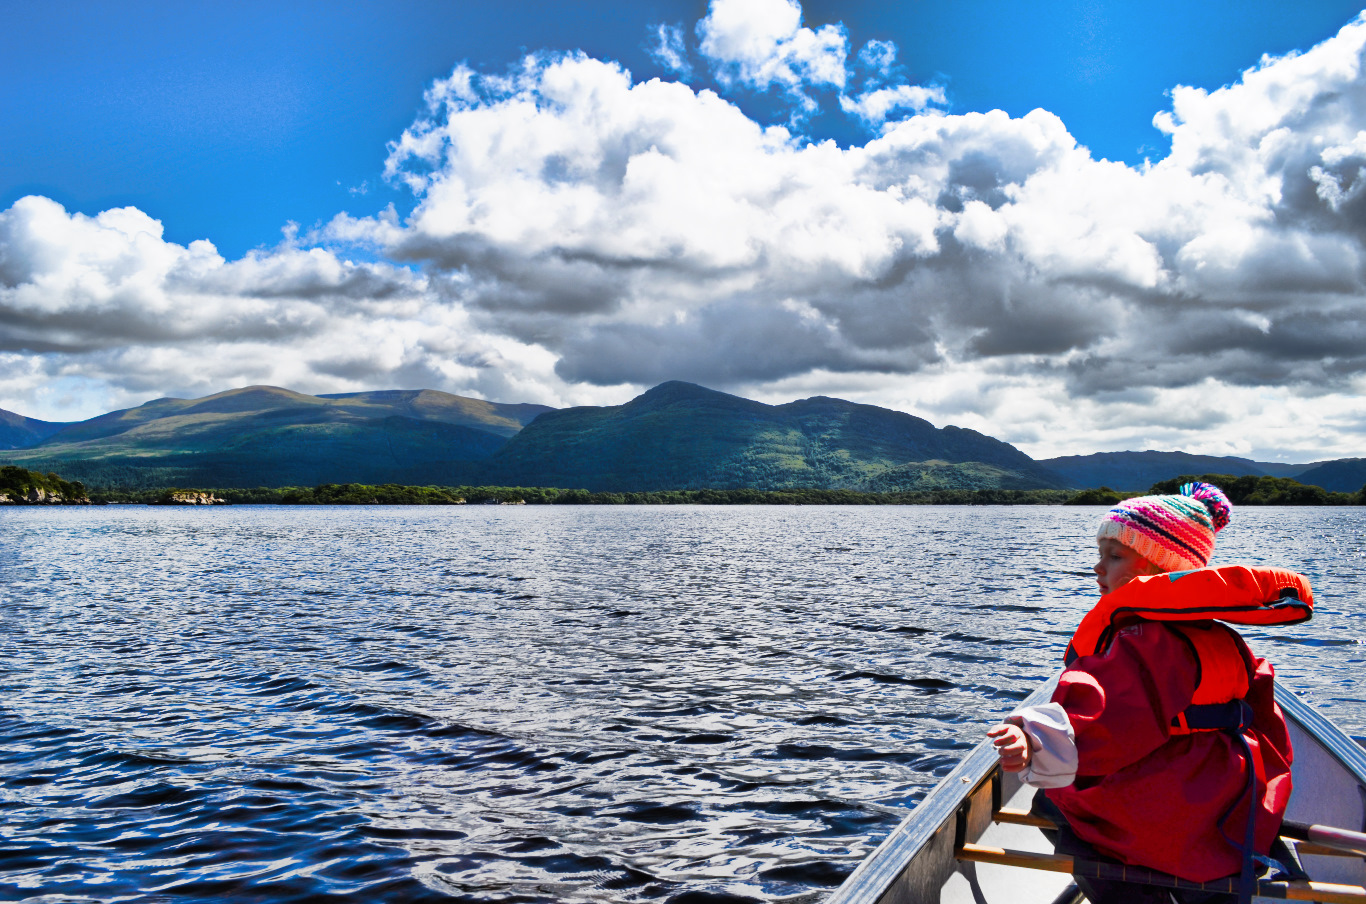 Kayaking in Killarney National Park